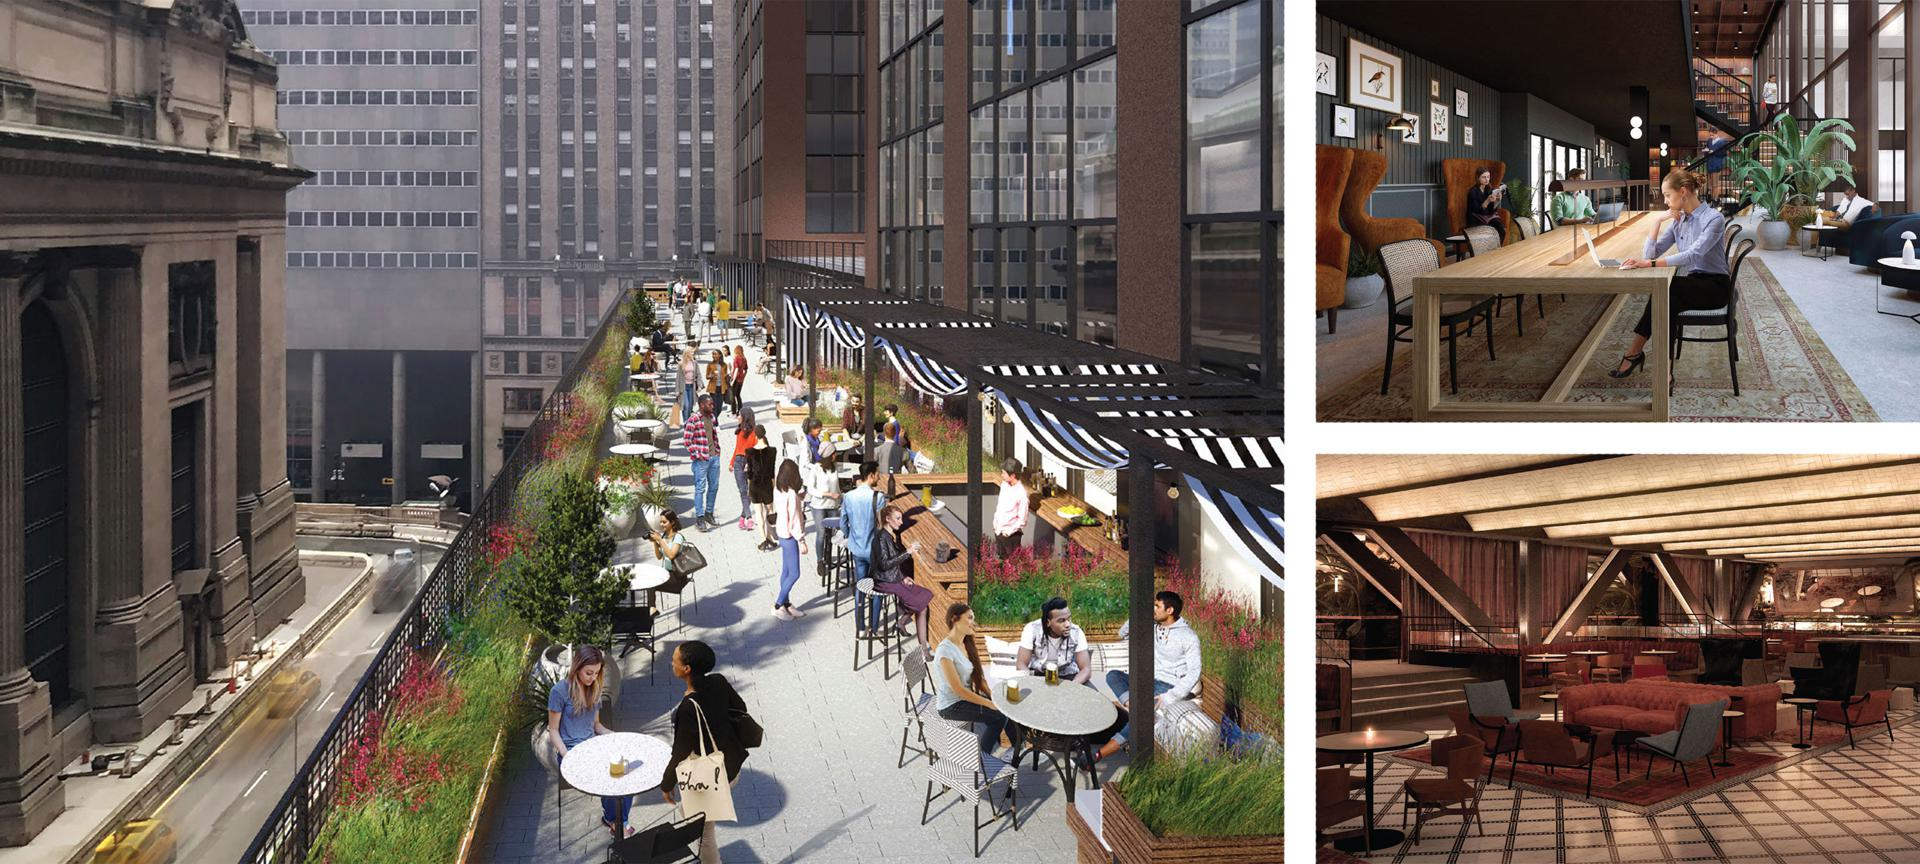 Company's mixed-use tech campus will include outdoor seating on a terrace overlooking Grand Central Terminal, as well as an executives-only space and a ground-floor bar.